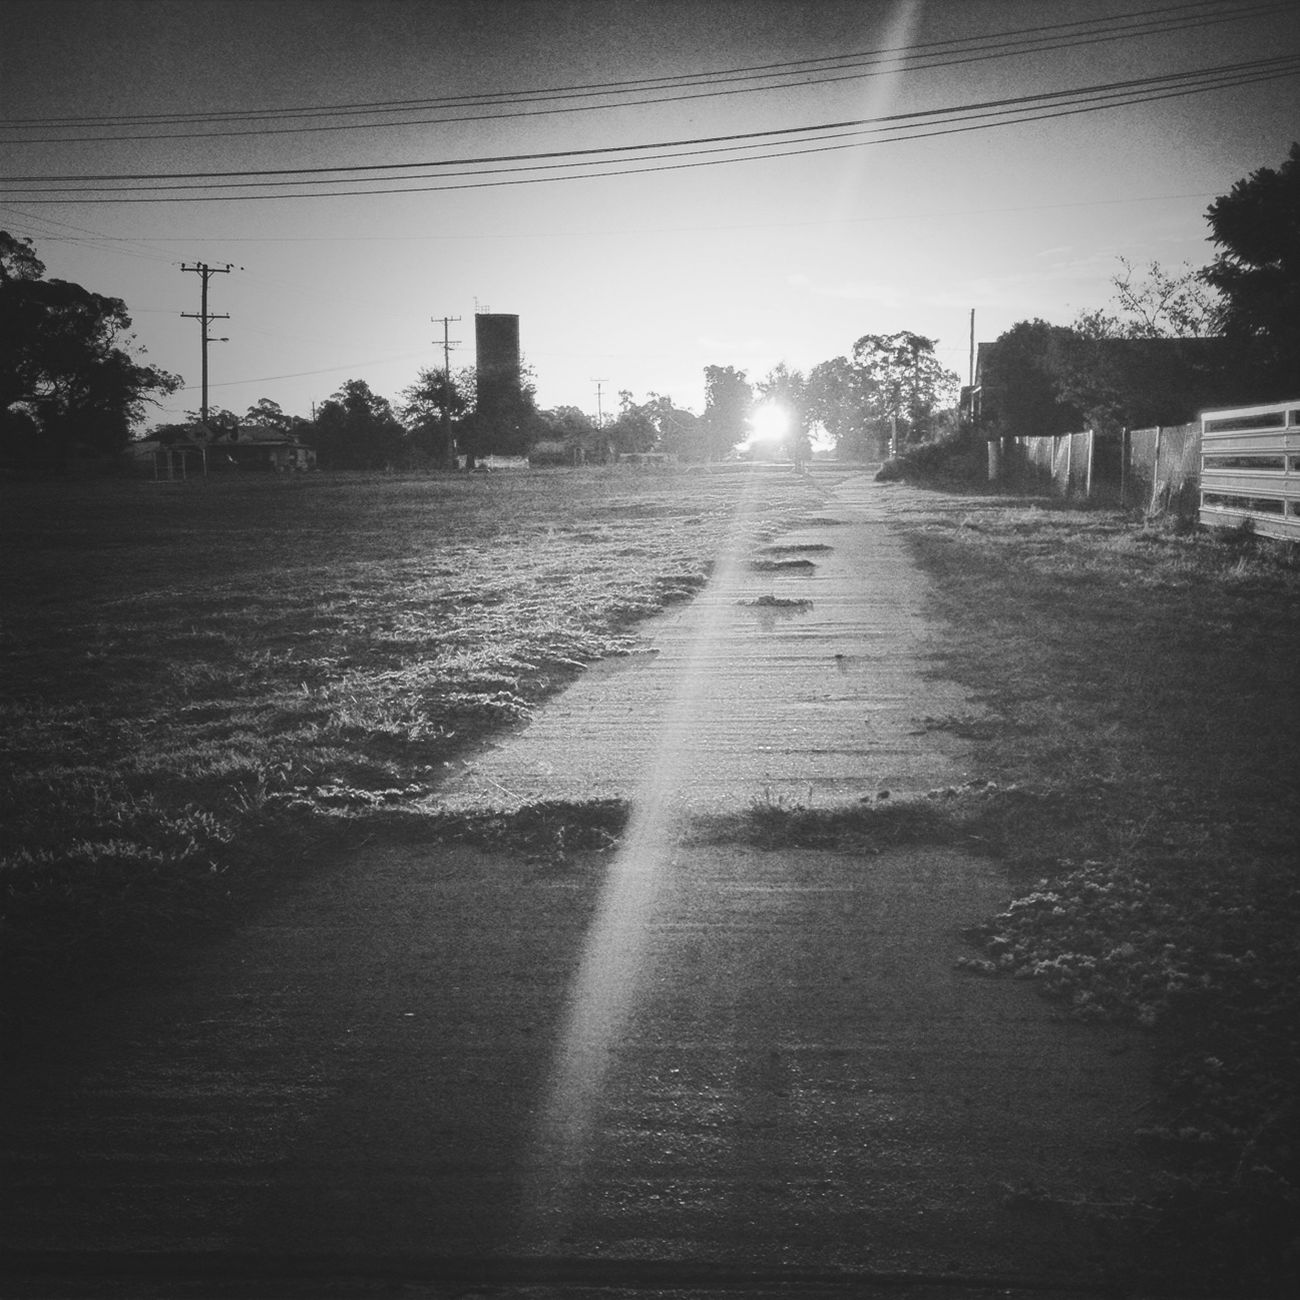 Follow the path to the way home follow the light to heaven